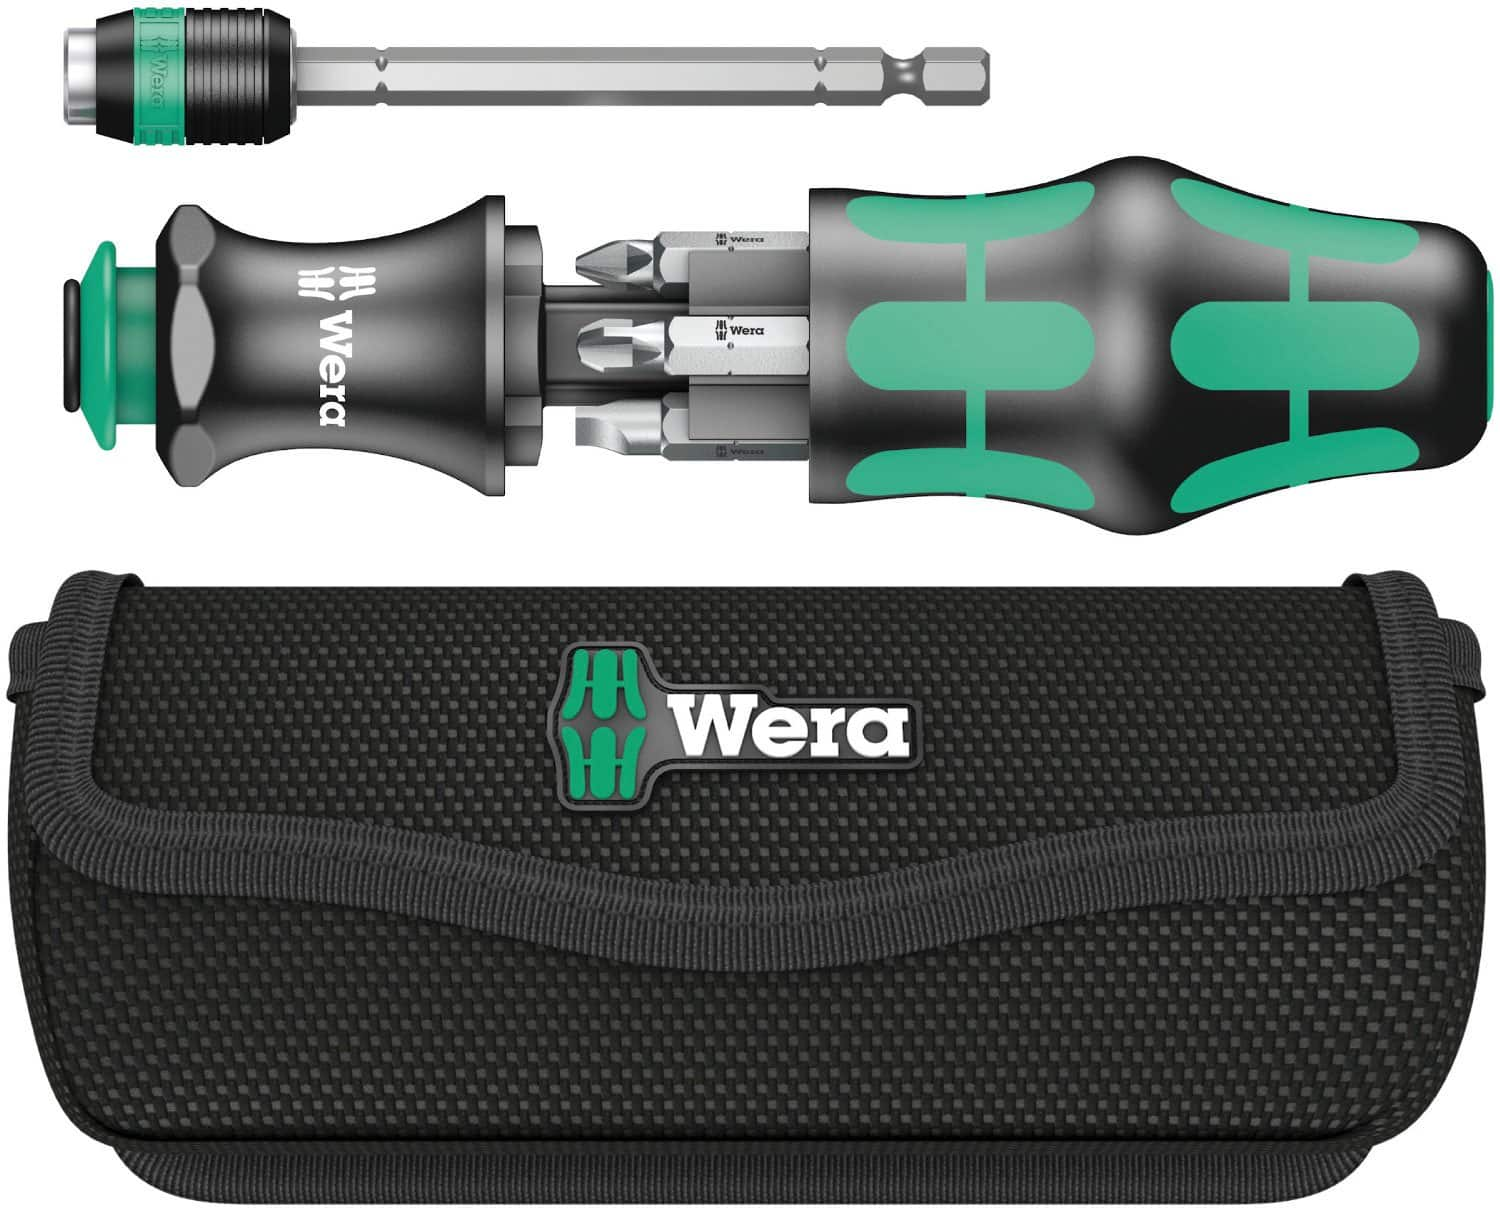 Wera Kraftform Kompakt 25 Slotted and Phillips Bitholding Screwdriver with Bayonet Blade and Pouch $25.98+Tax